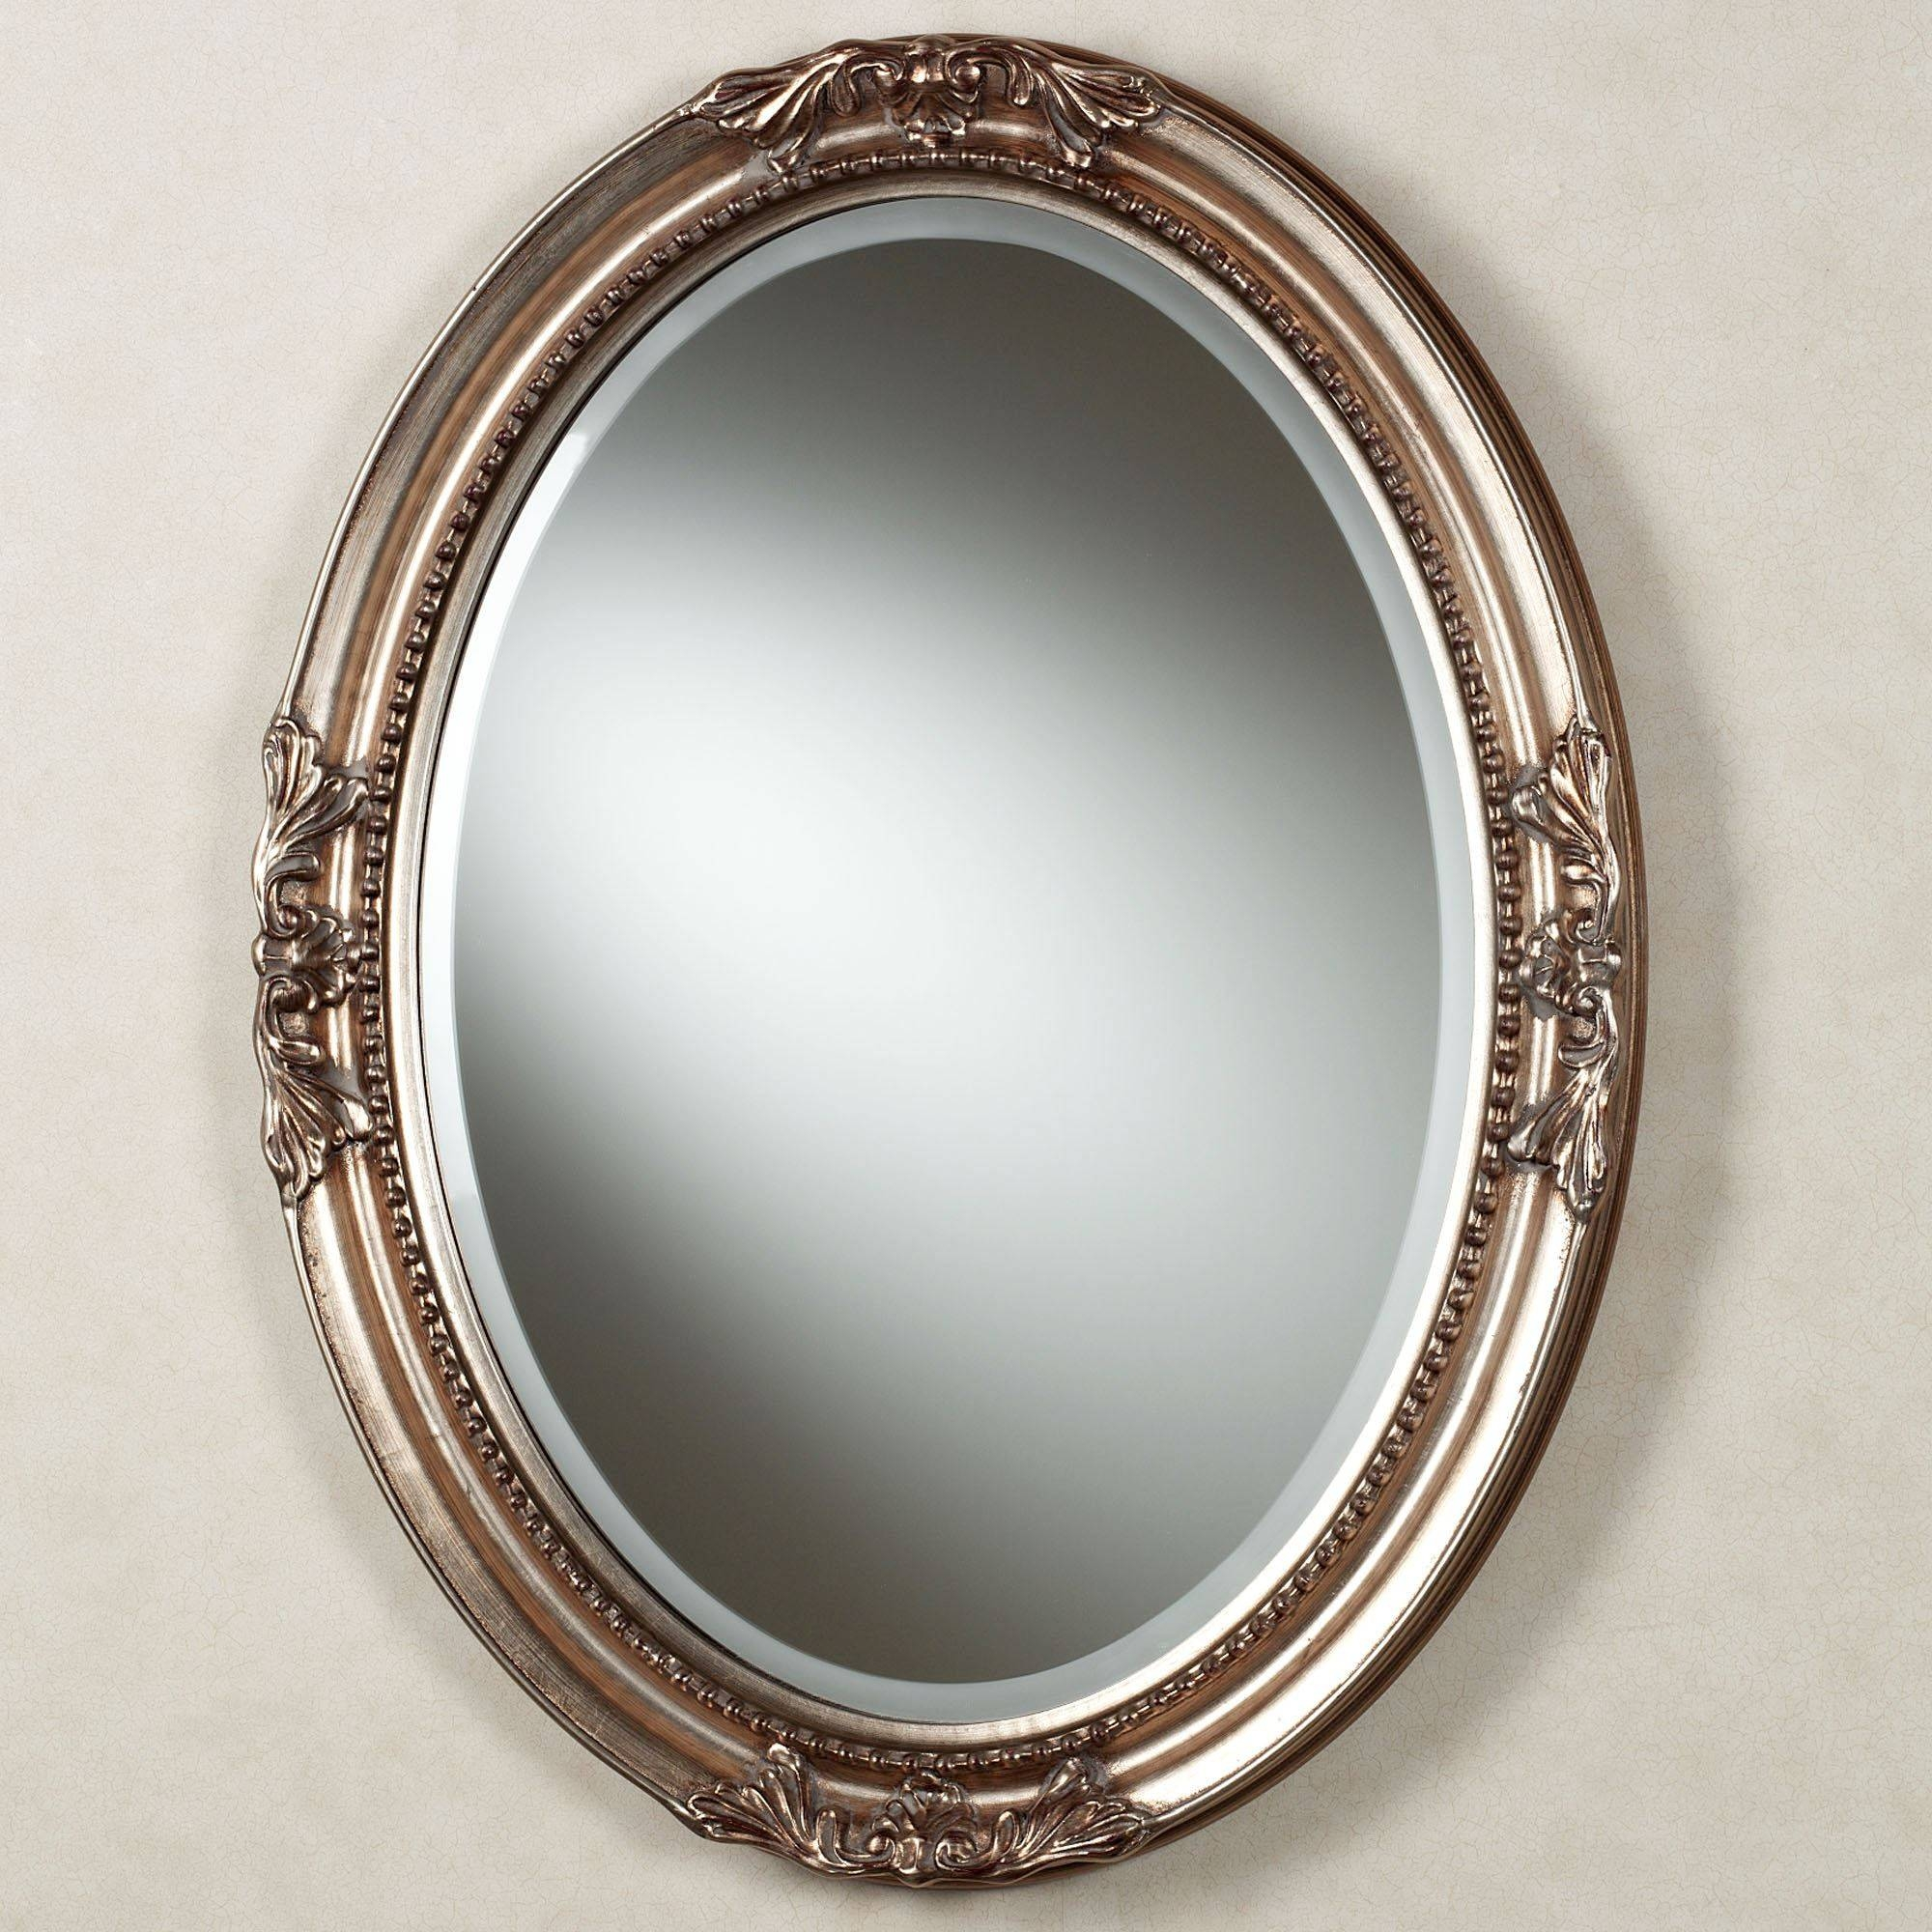 Andina Oval Wall Mirror Pertaining To Oval Wall Mirrors (View 1 of 25)